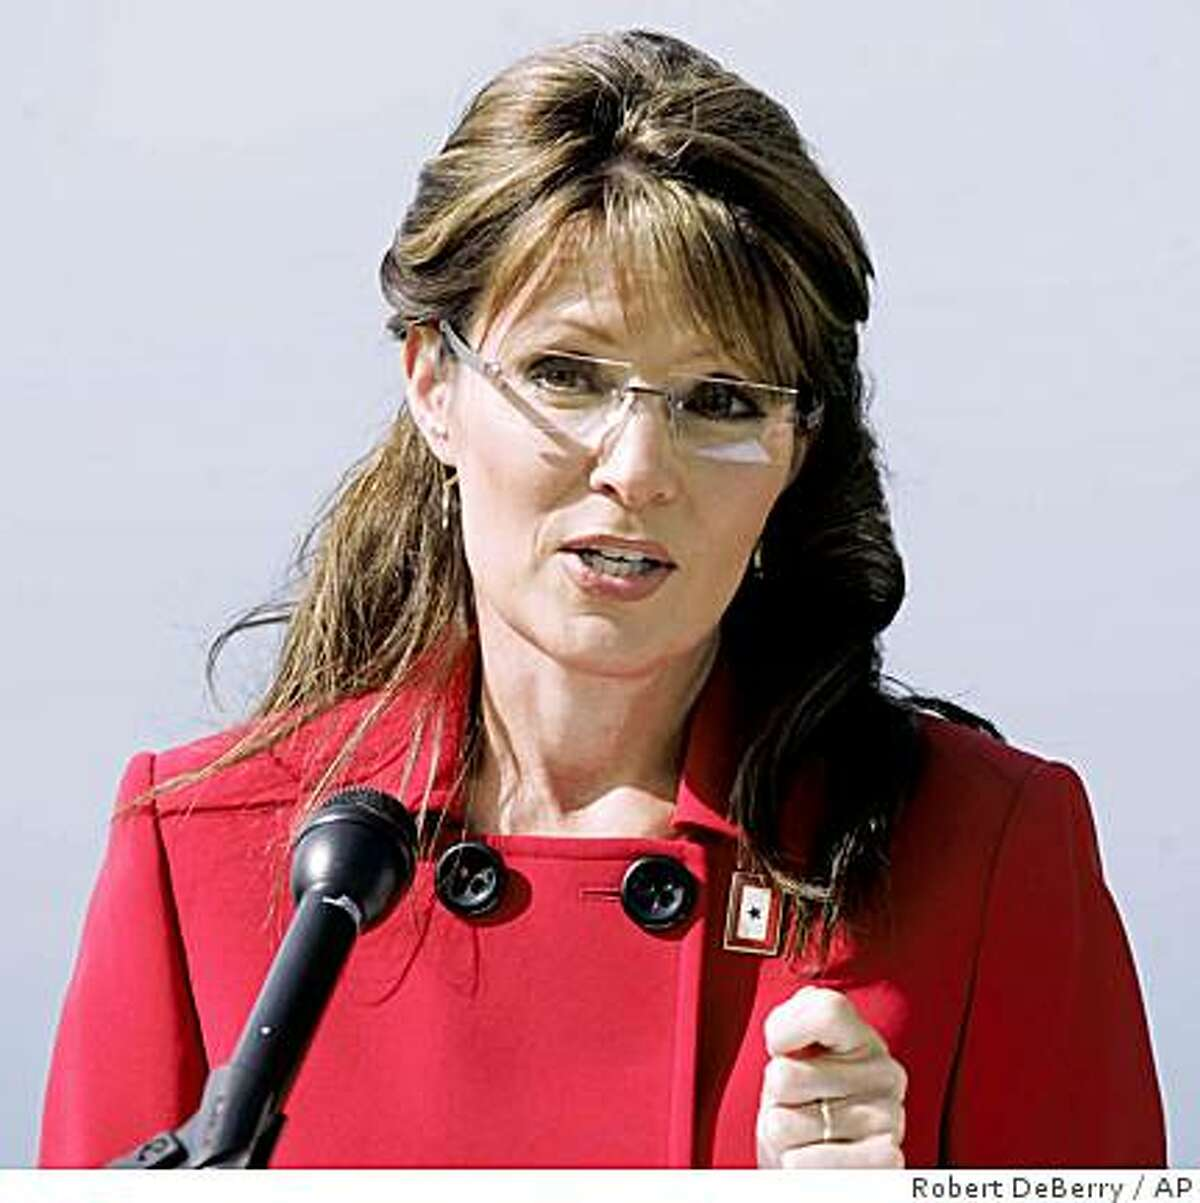 Alaska Gov. Sarah Palin announces that she is stepping down from her position as Governor in Wasilla, Alaska on Friday July 3, 2009. The former Republican vice presidential candidate made the surprise announcement, saying she would step down July 26 but didn't announce her plans. (AP Photo/The Mat-Su Valley Frontiersman, Robert DeBerry) ** ANCHORAGE DAILY NEWS OUT **